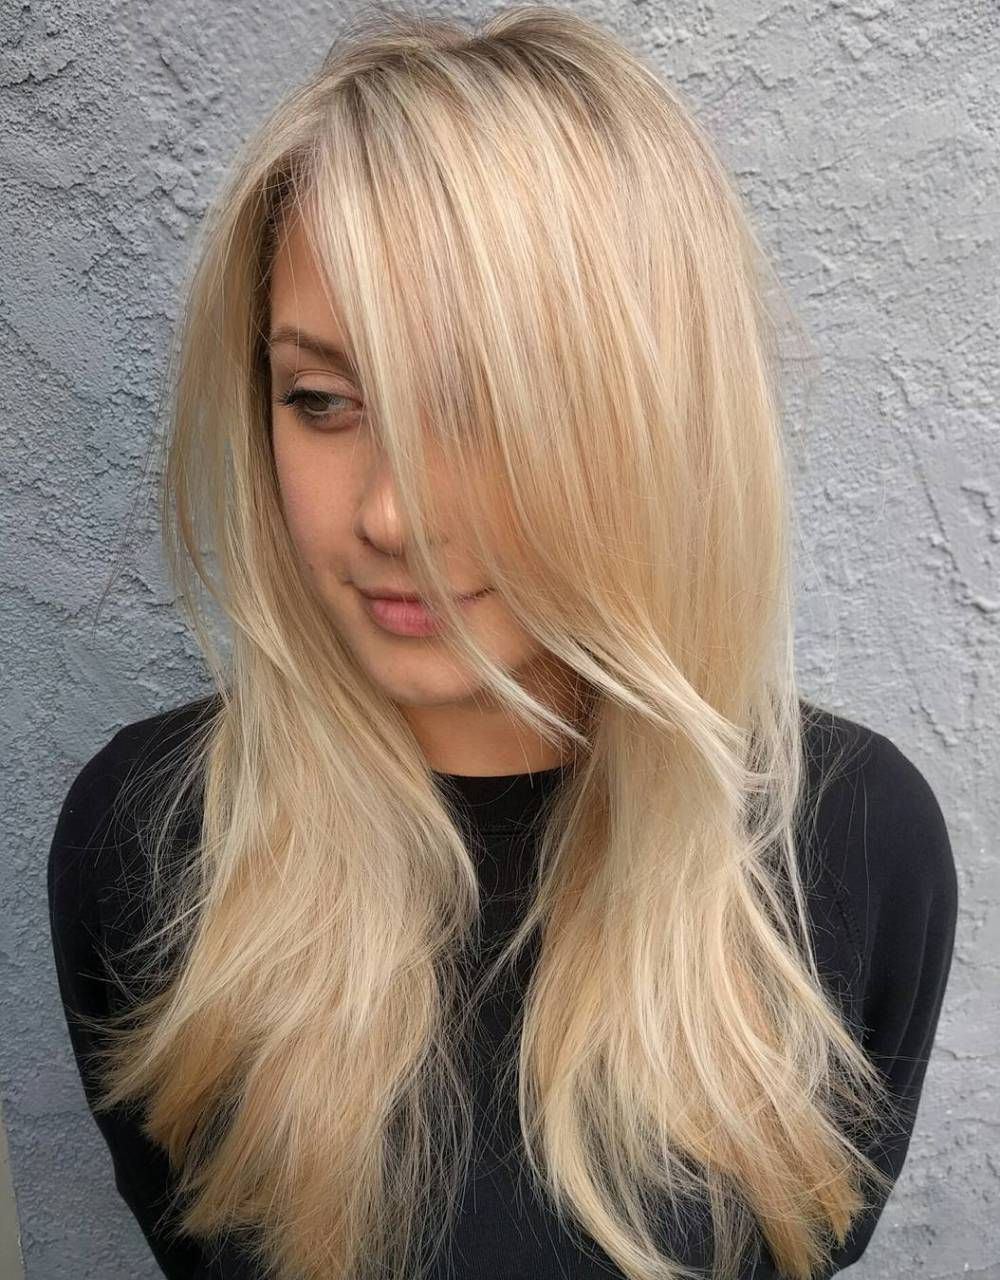 40 Long Hairstyles And Haircuts For Fine Hair Long Thin Hair Haircuts For Fine Hair Long Fine Hair